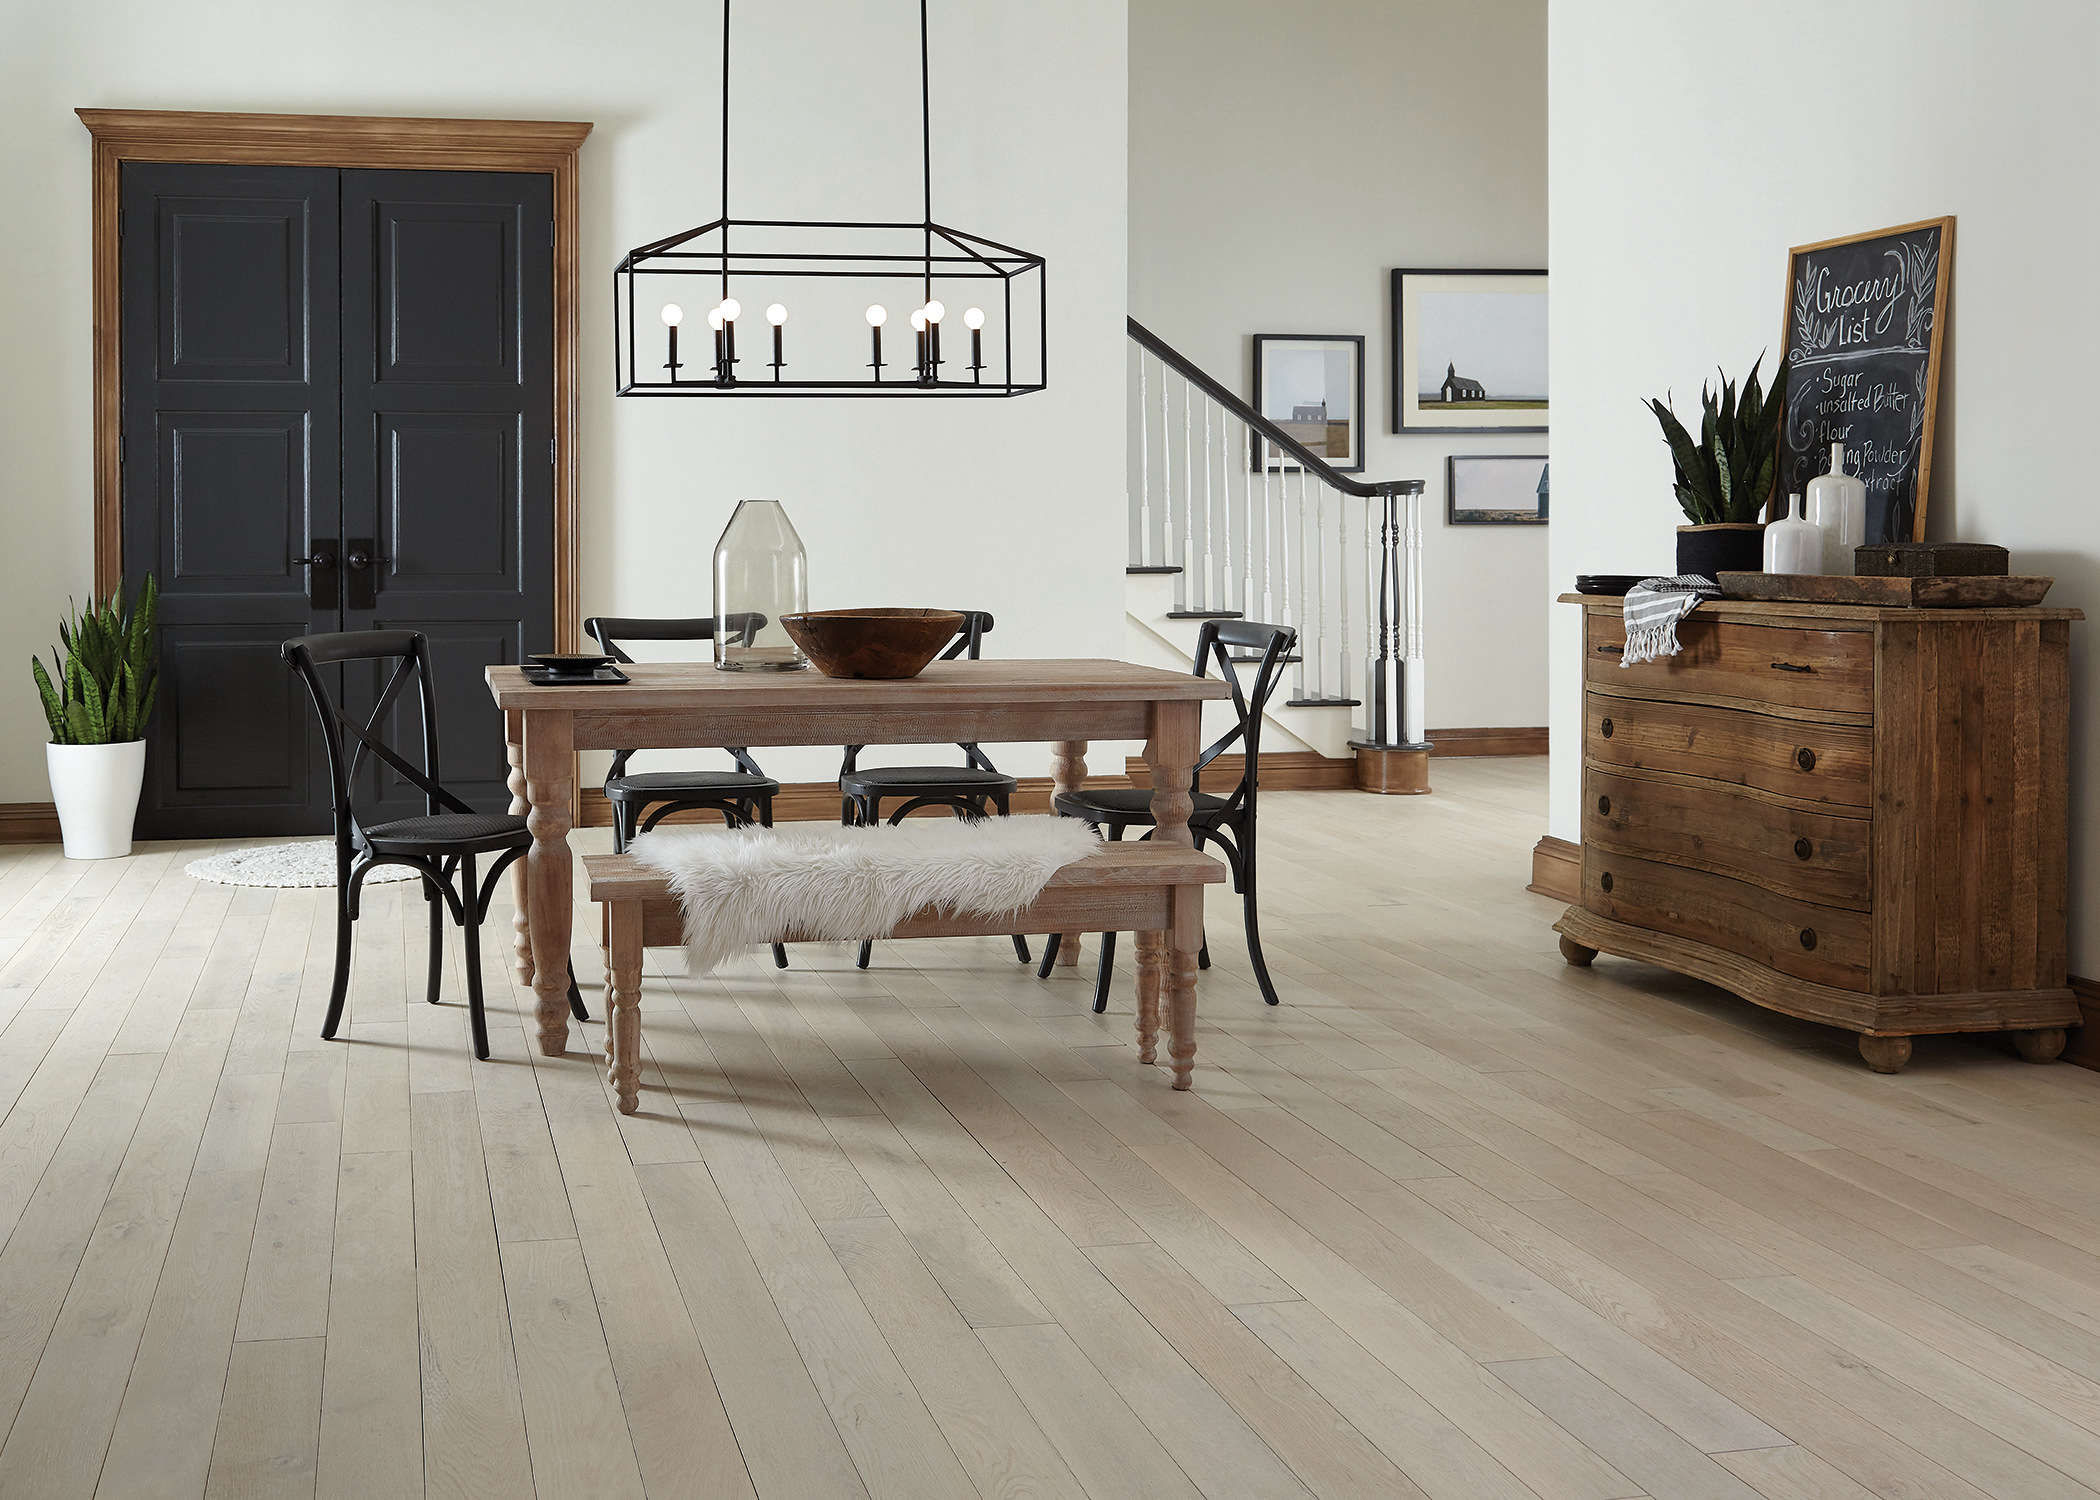 Maison Du Monde Terrazzo deal alert: quality, on-trend flooring, on sale now from